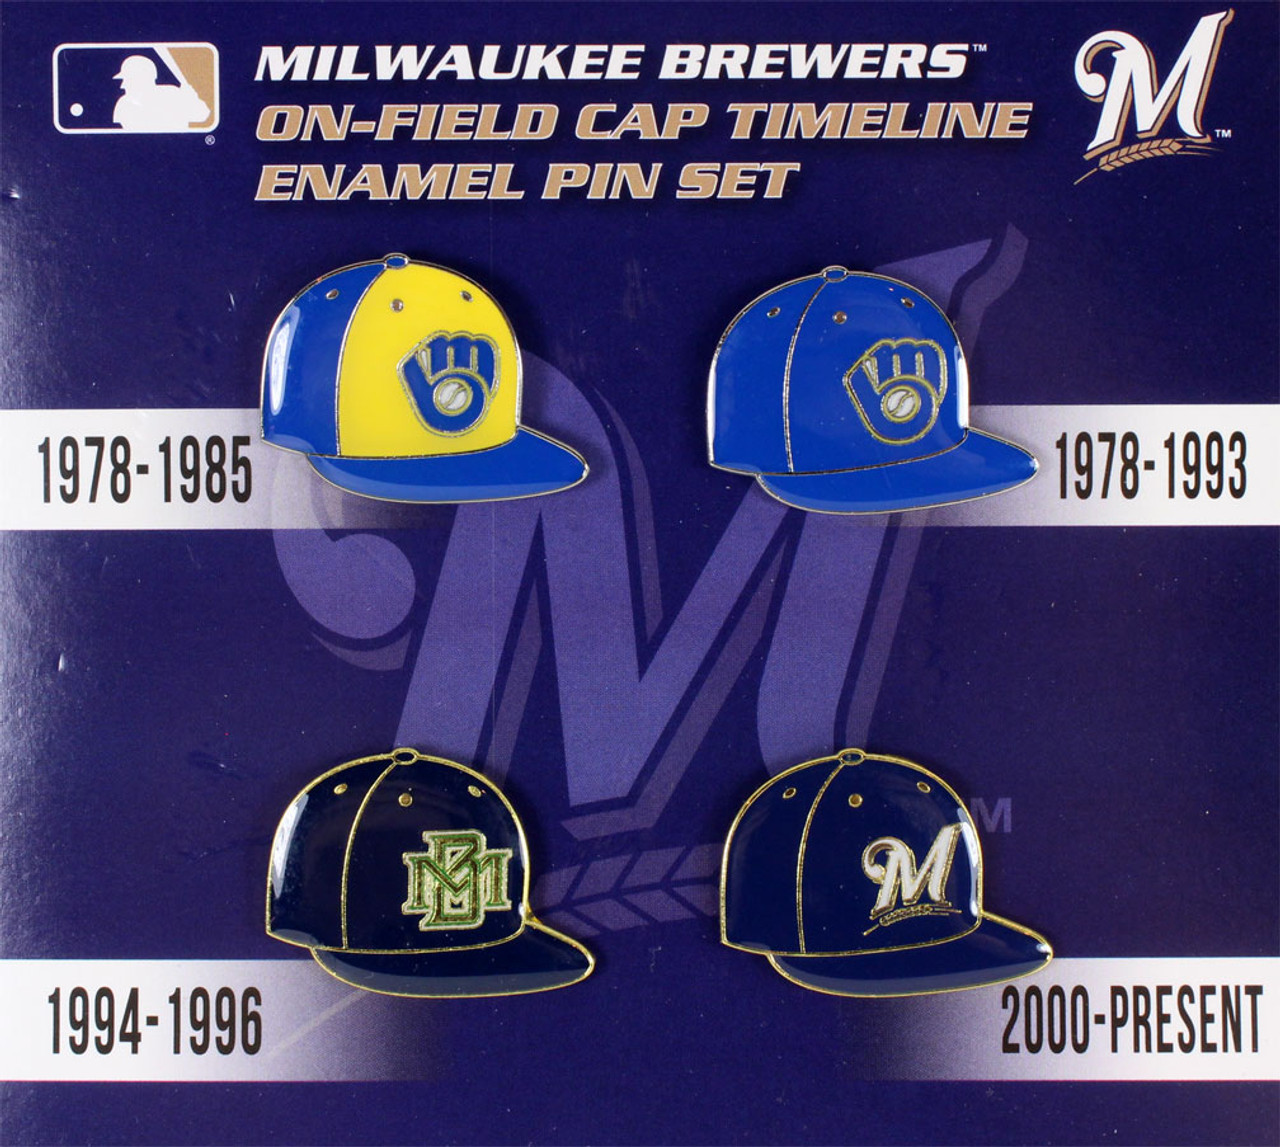 d72e9a78f Milwaukee Brewers Cooperstown Collection Cap Timeline Pin Set